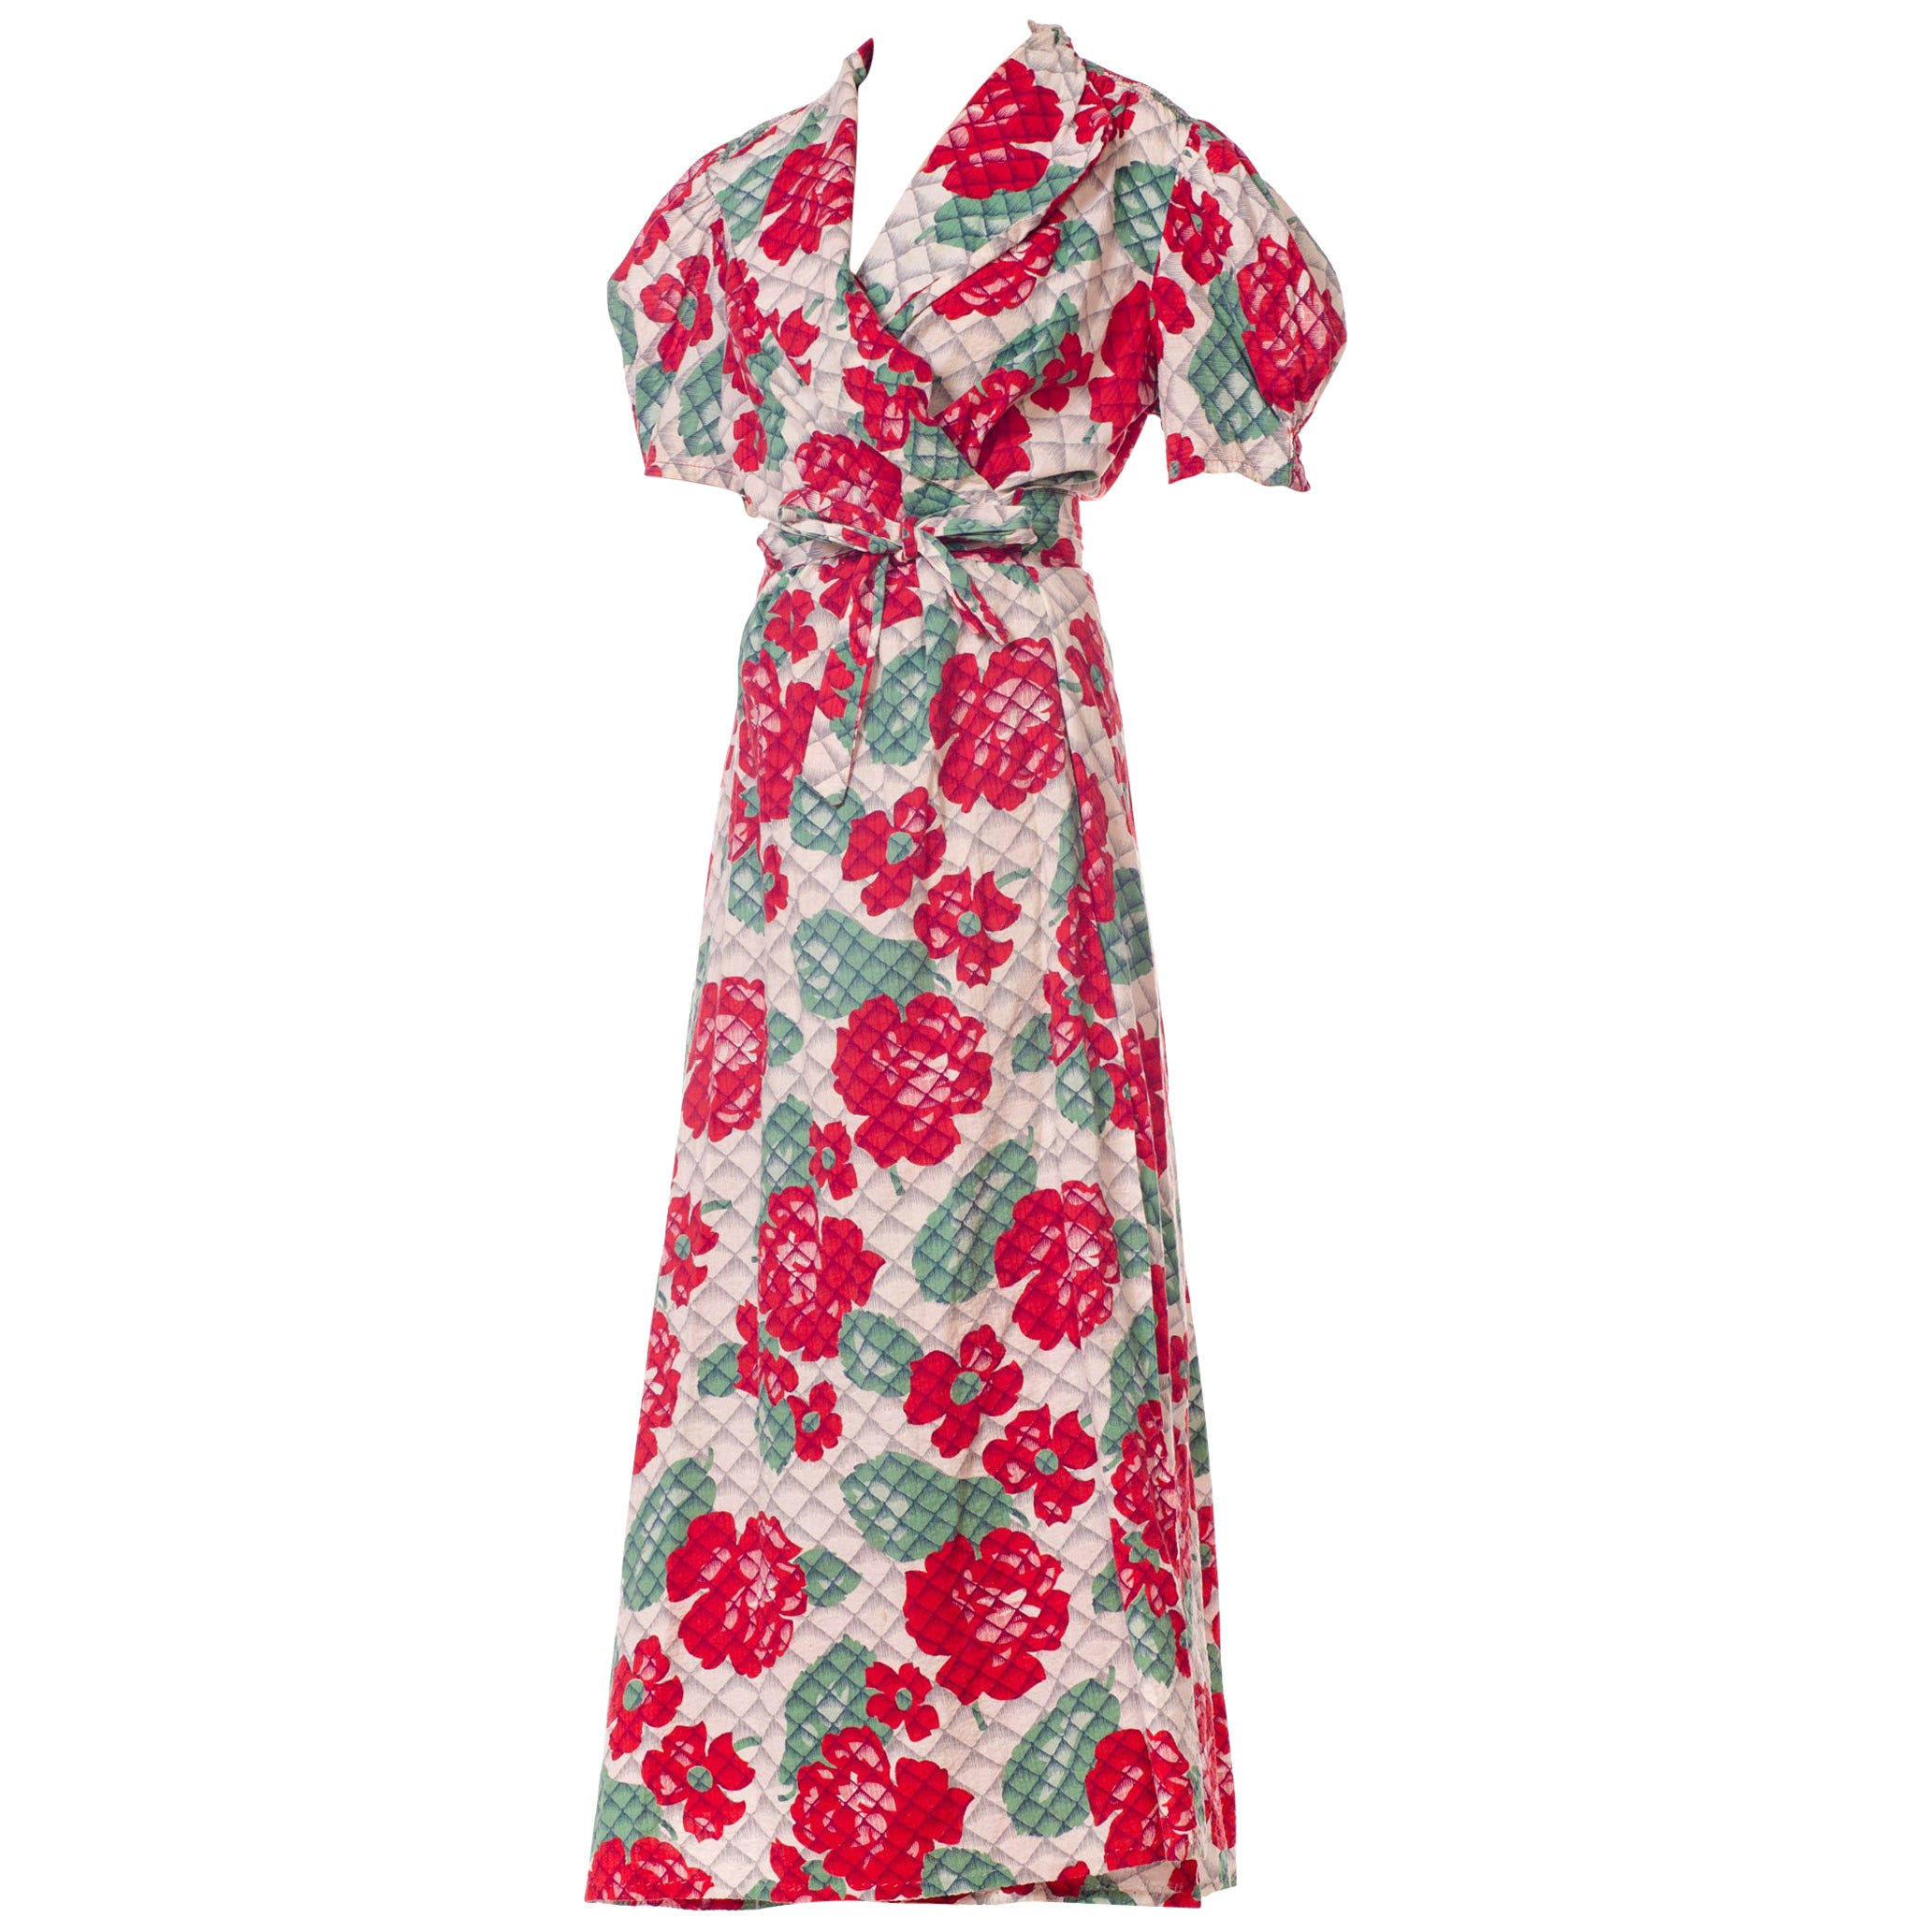 1940S Cotton Red And Green Floral Print Wrap Dress House Robe